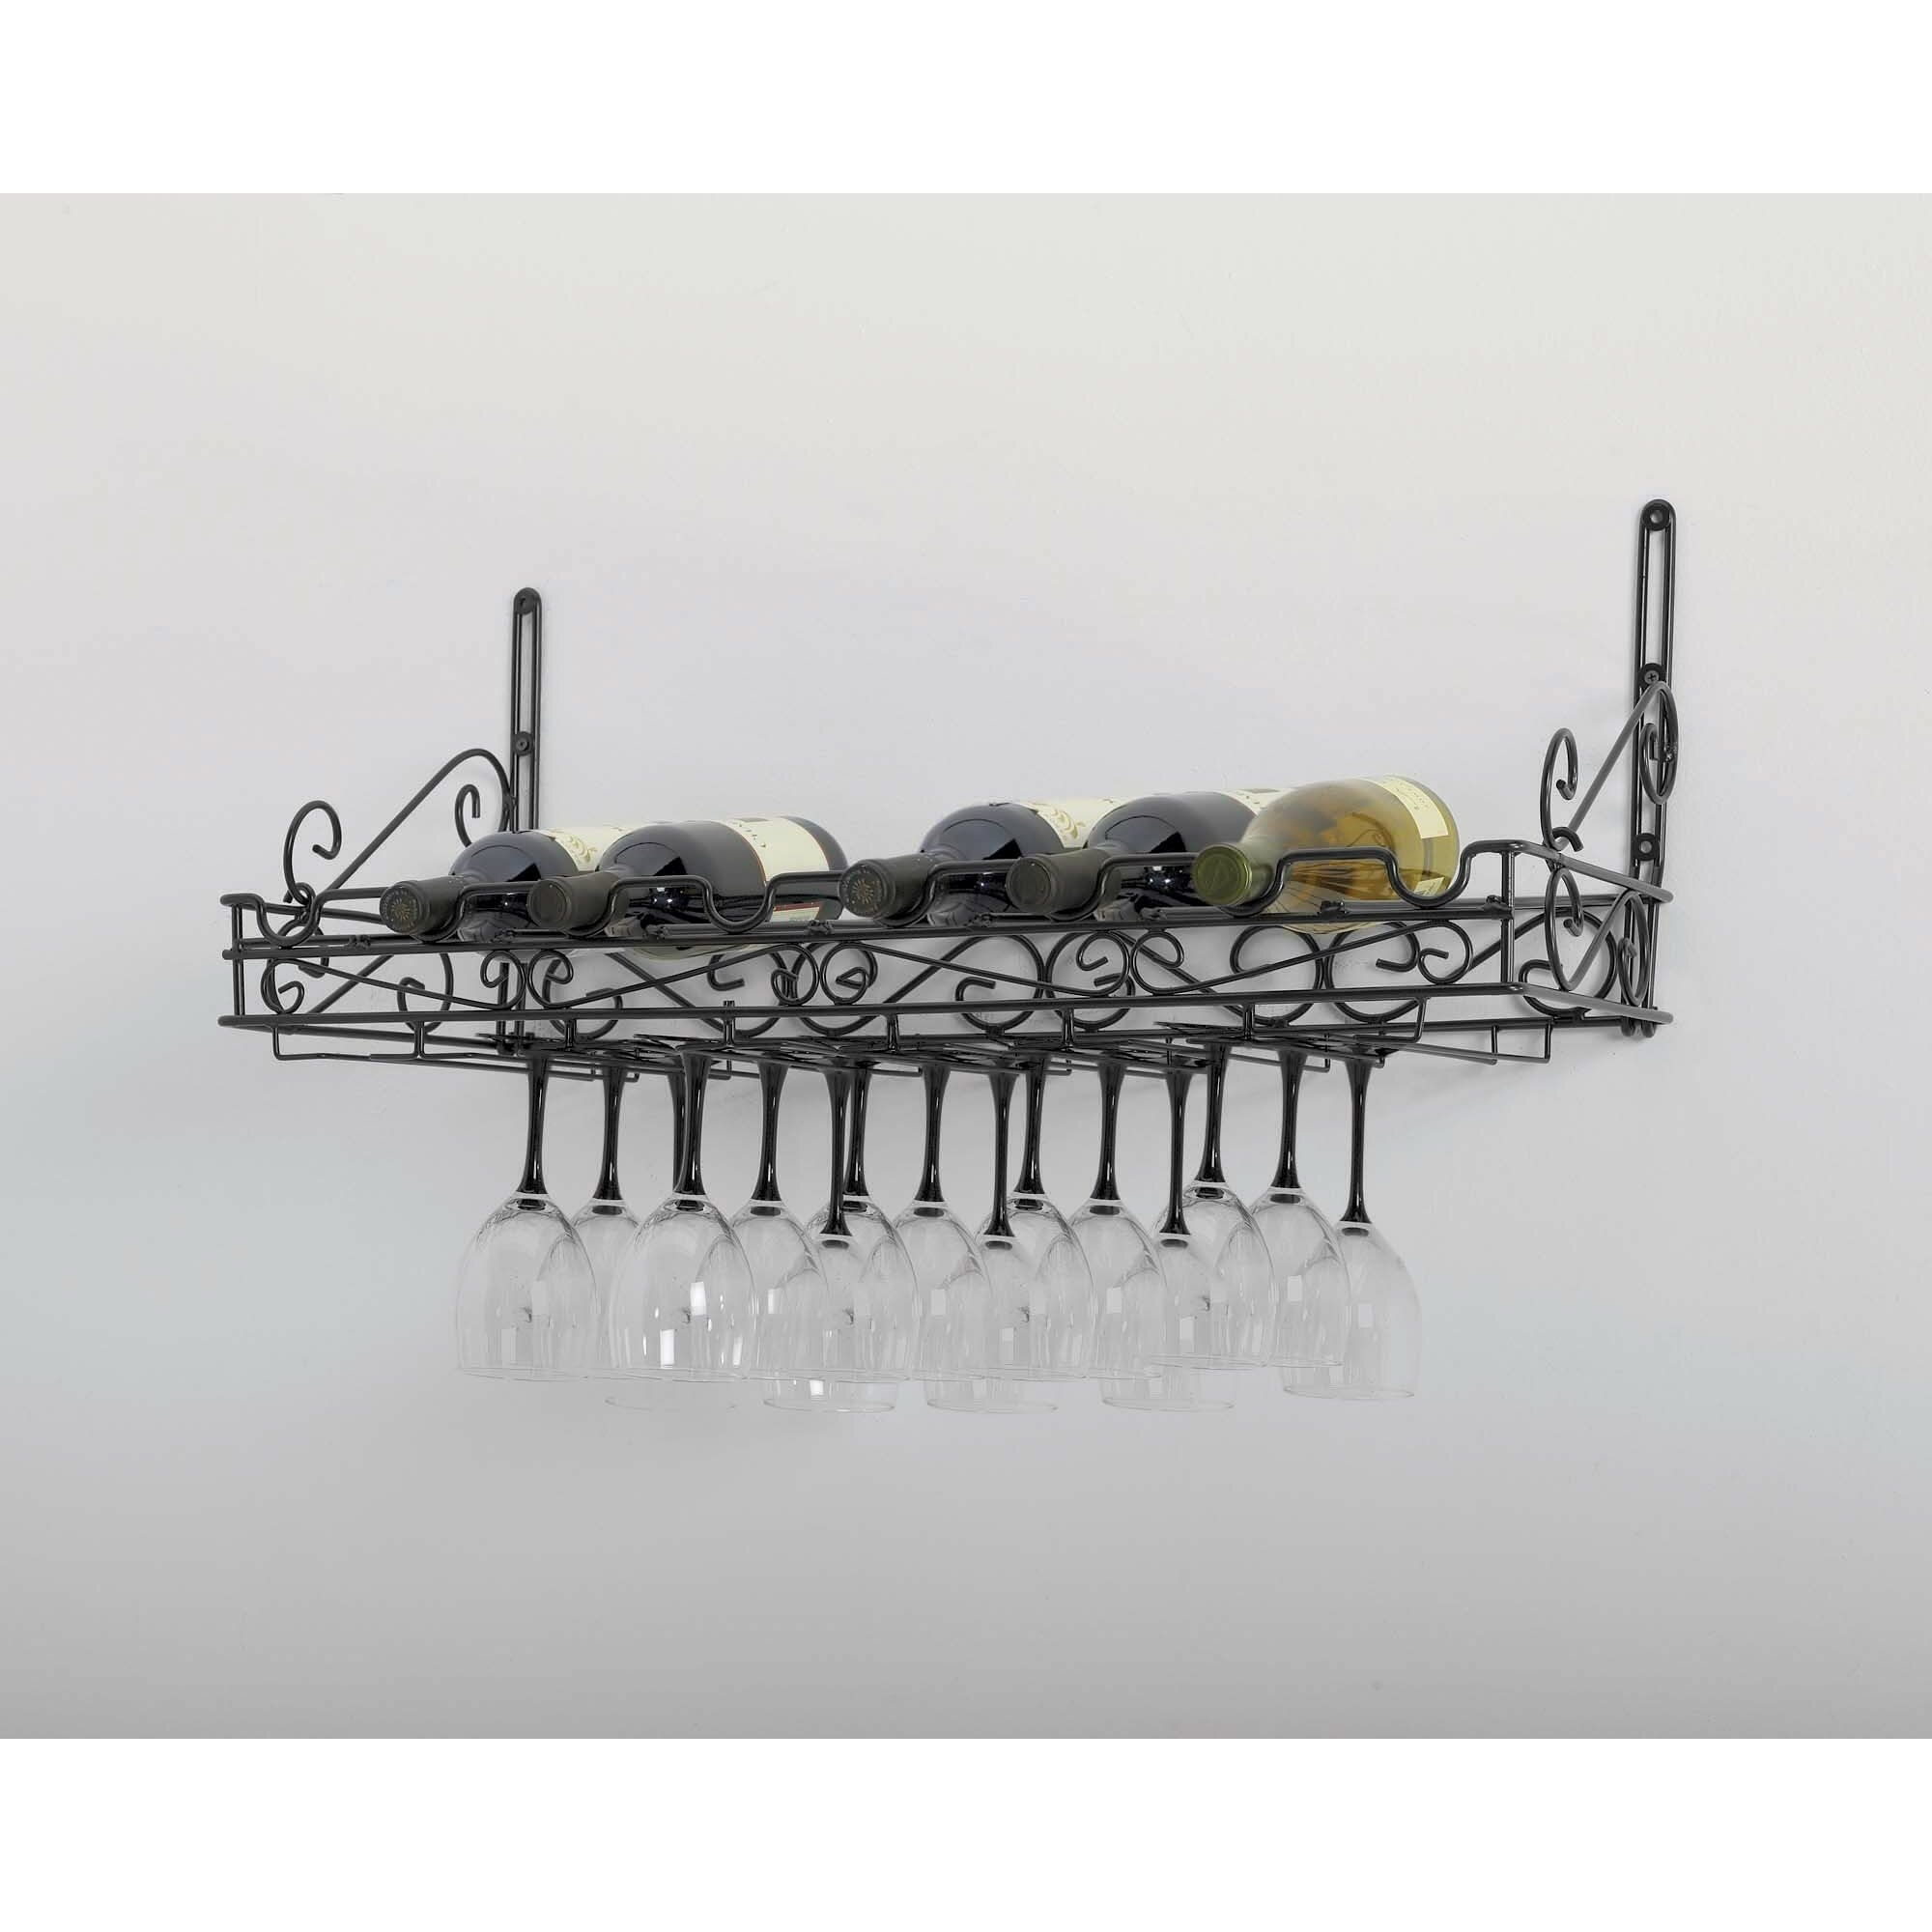 Concept Housewares 8 Bottle Wall Mounted Wine Glass Rack